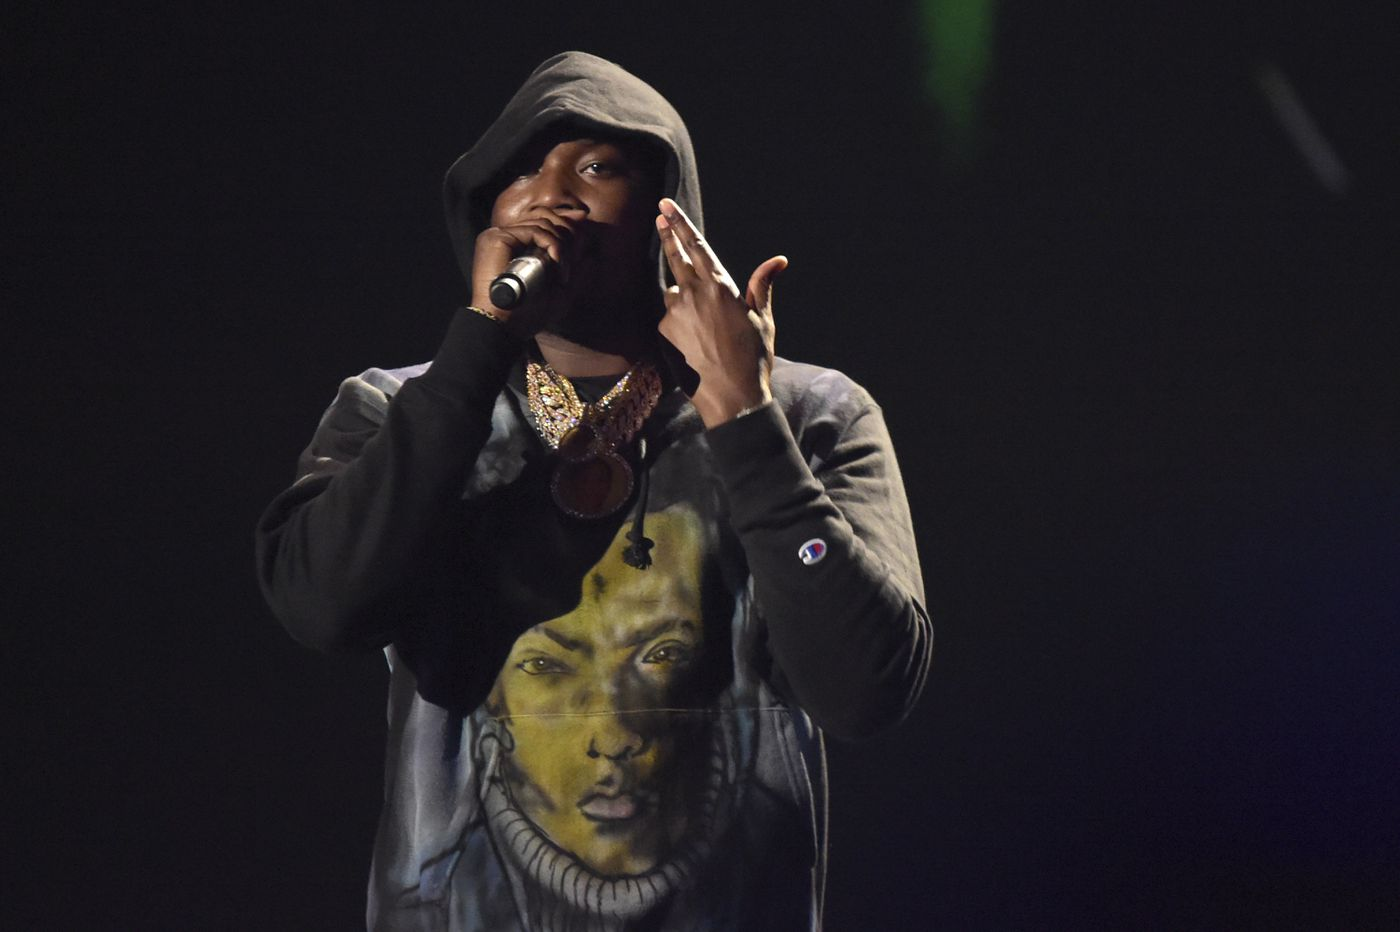 Meek Mill debuts first new song since release from prison, 'Stay Woke,' at BET Awards